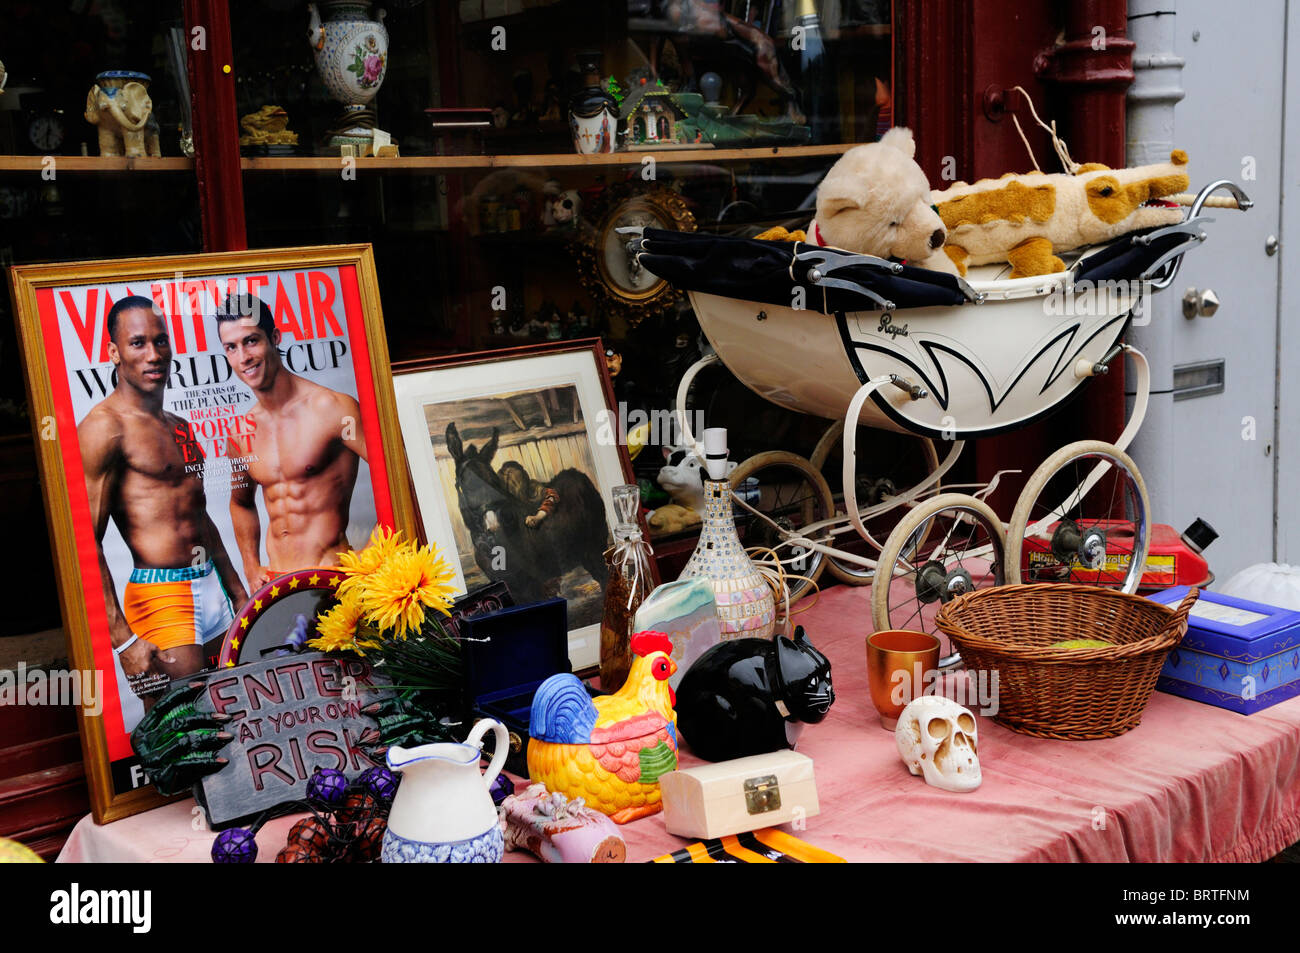 Antiques Shop display, Golbourne, Road, off Portobello Road, Notting Hill, London, England, UK - Stock Image